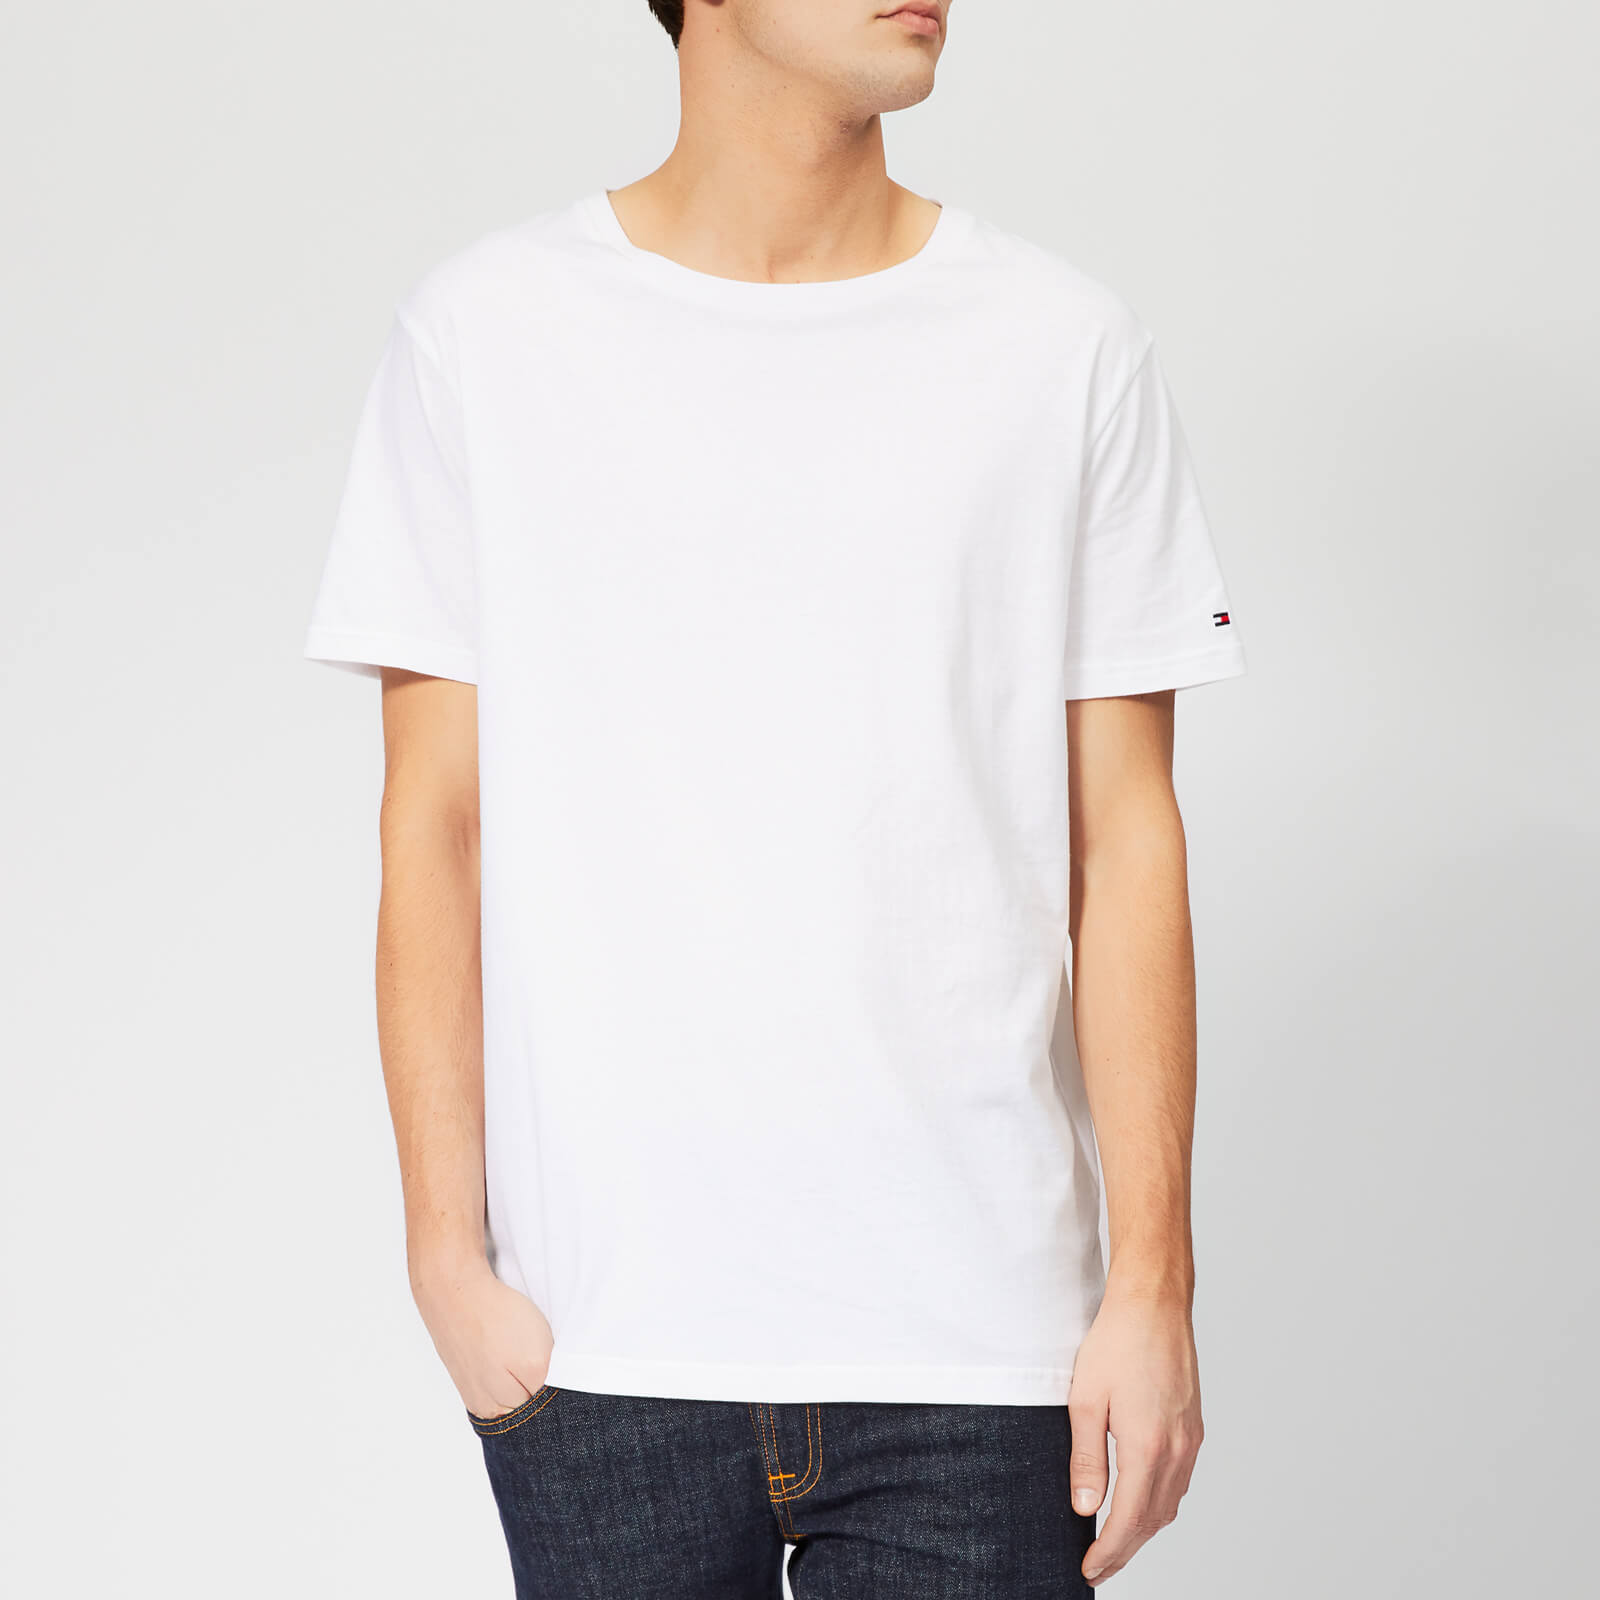 tomy Short Sleeve Crew Neck T-shirts For Mens